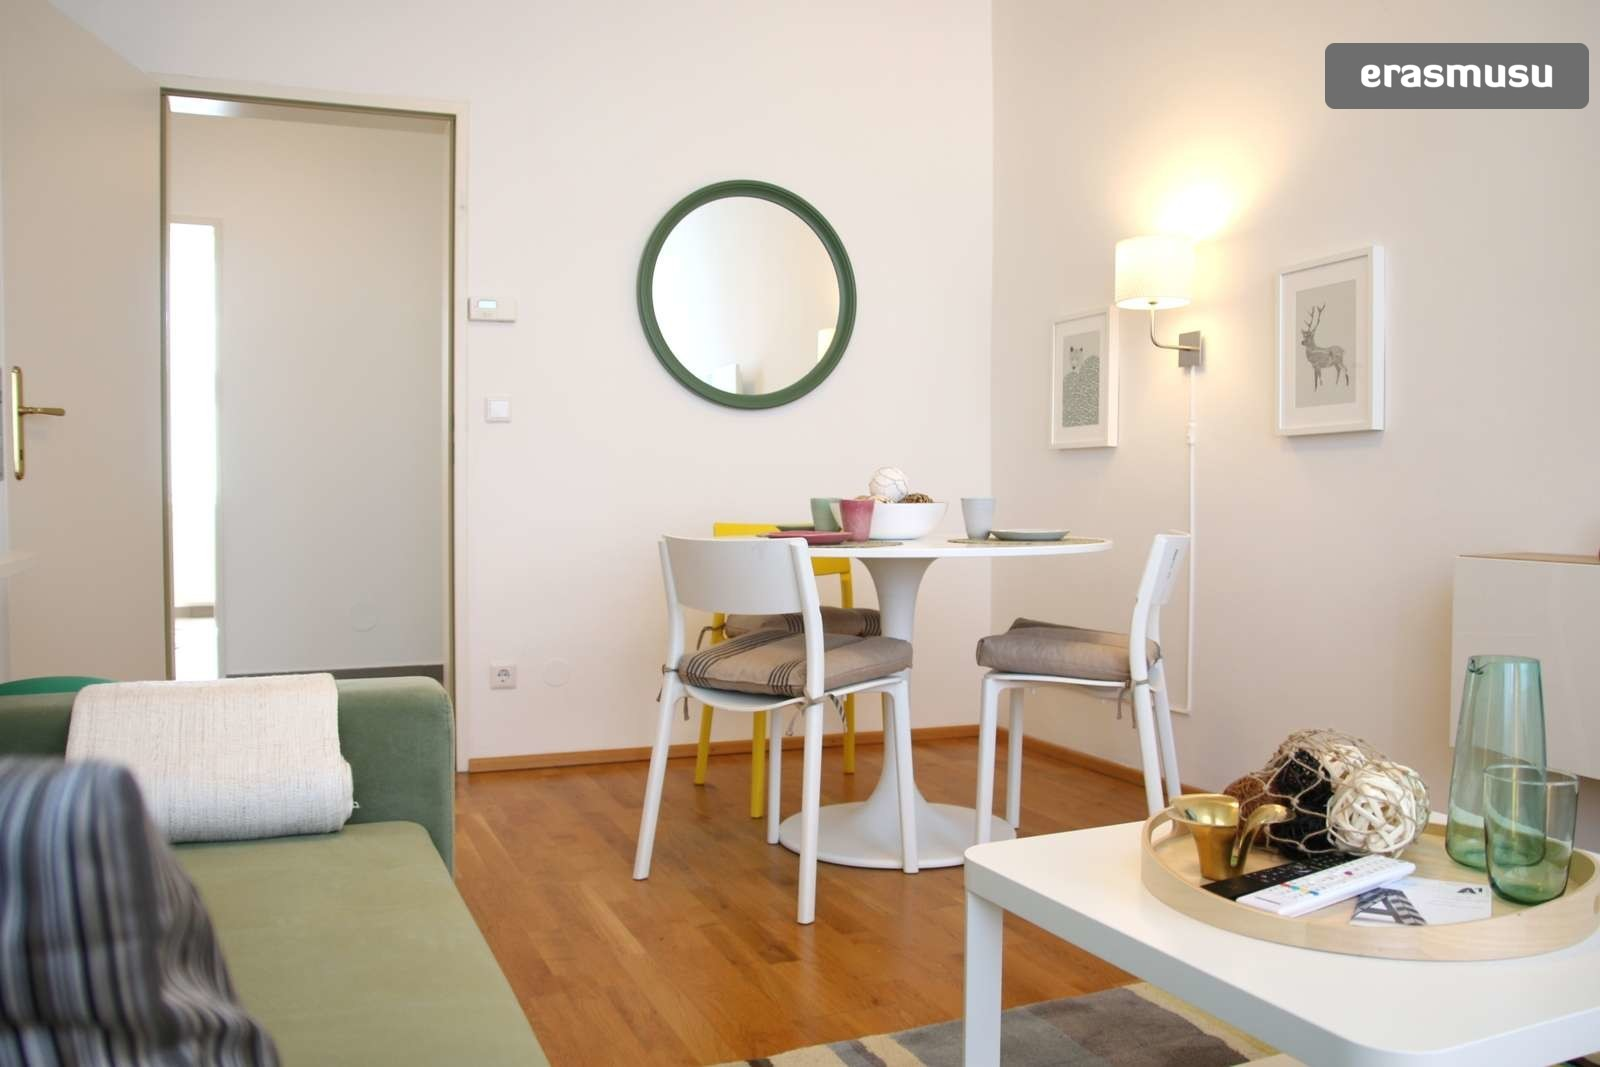 studio-apartment-rent-wahring-3de5934418b14855c706eb4e6ea9fd71